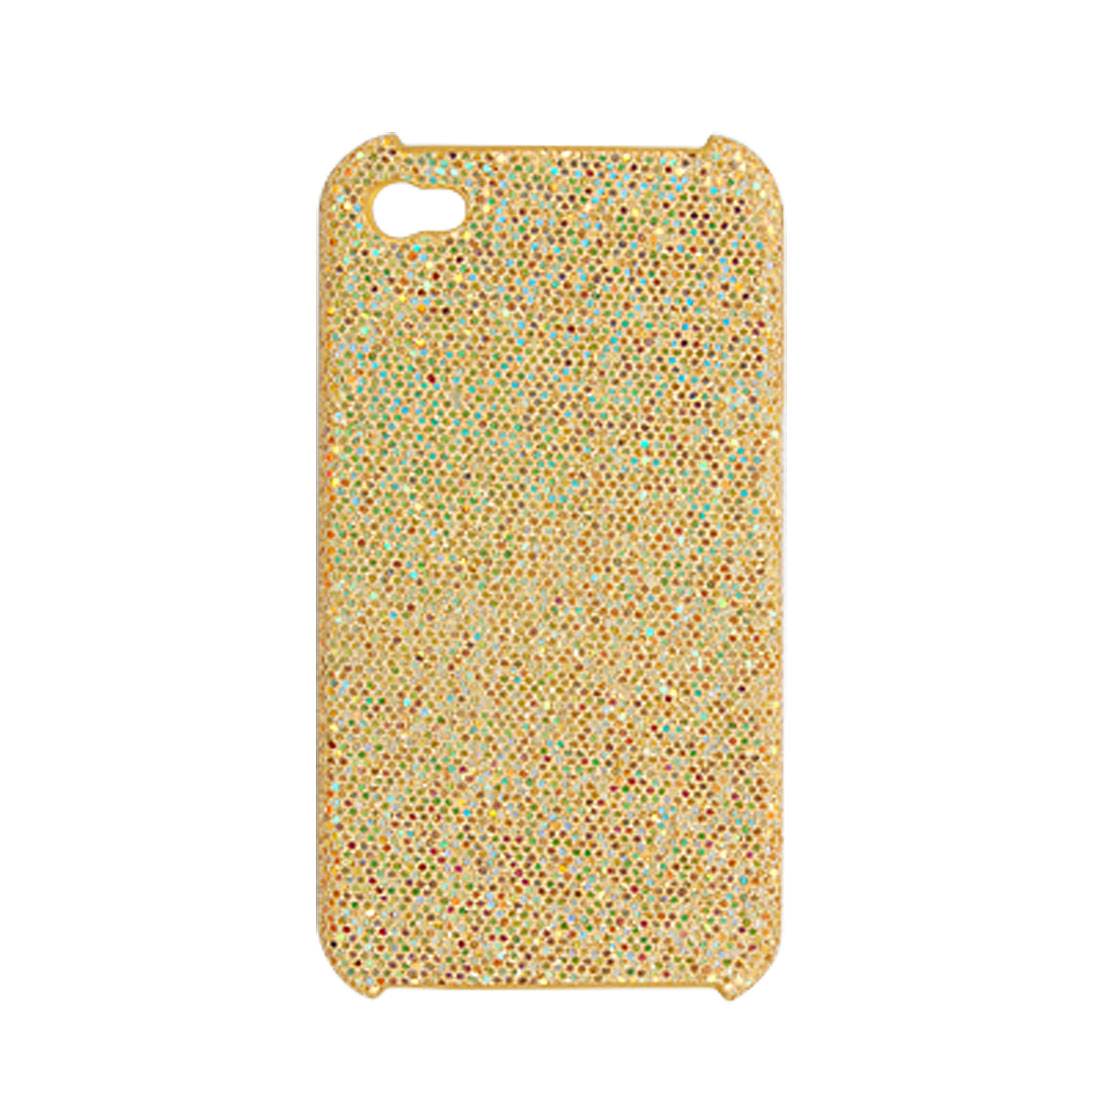 Gold Tone Sequin Decor Rubberized Hard Plastic Back Case for iPhone 4 4G